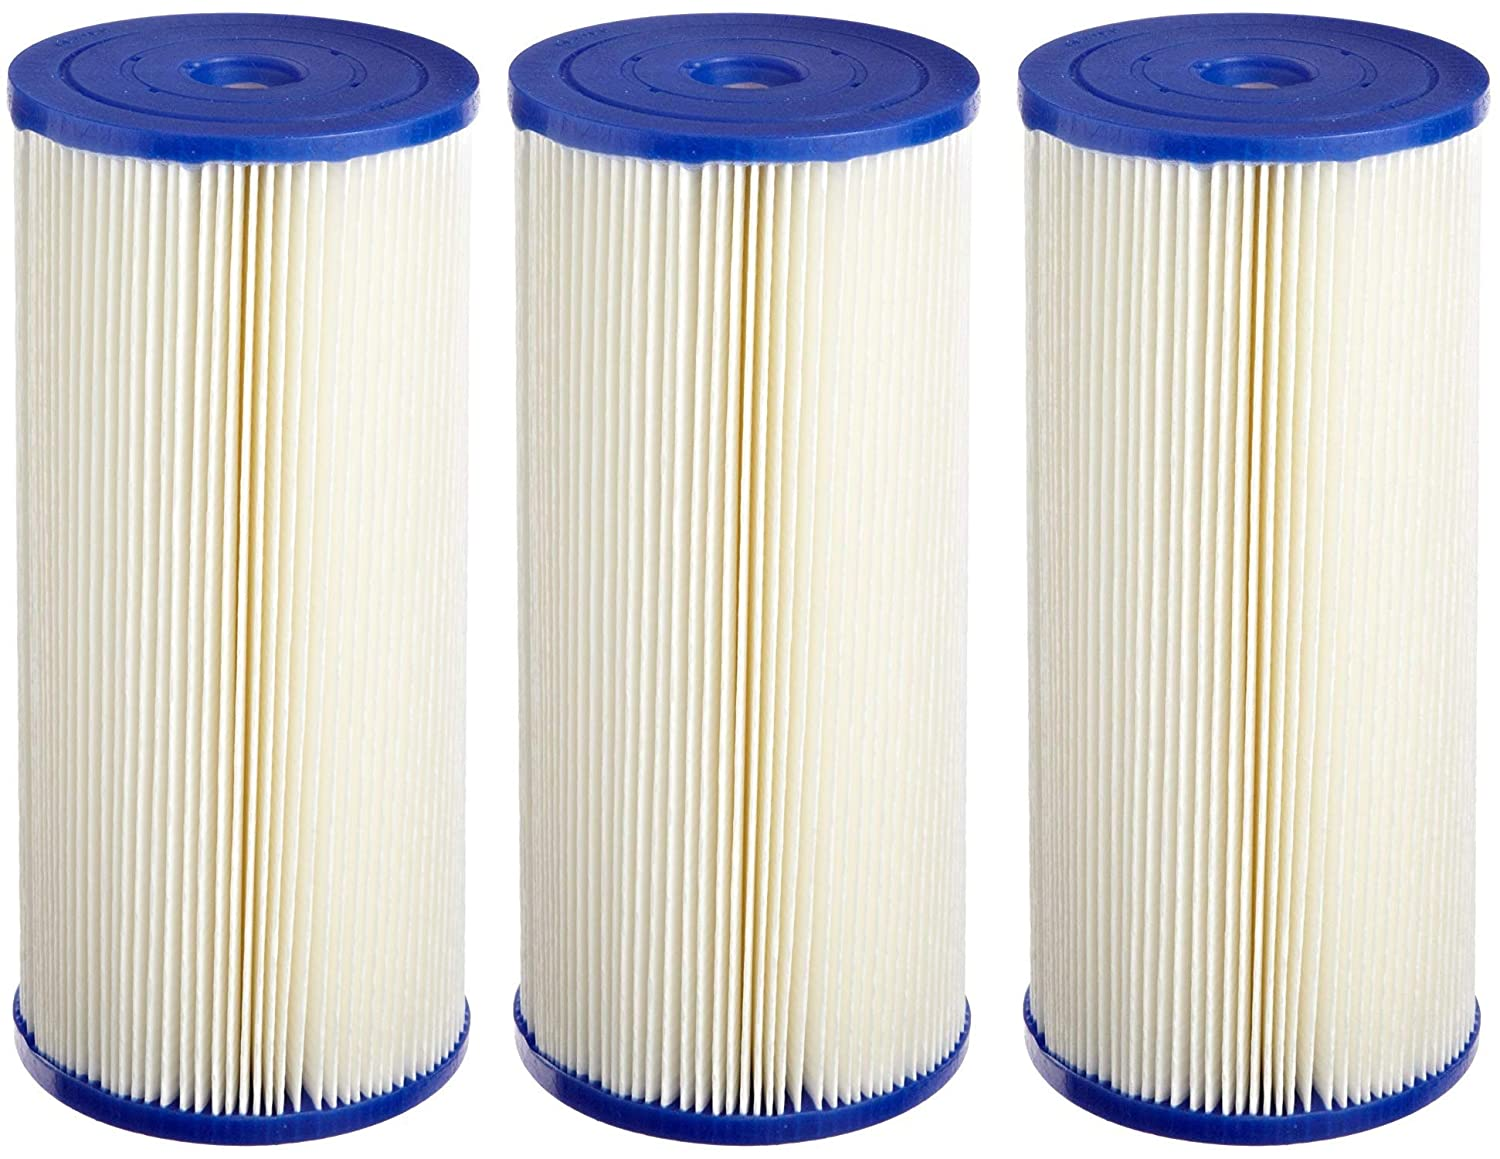 Pentek ECP20-BB Pleated Cellulose Polyester Filter Cartridge 9-3//4 x 4-1//2 Pack of 3 20 Microns